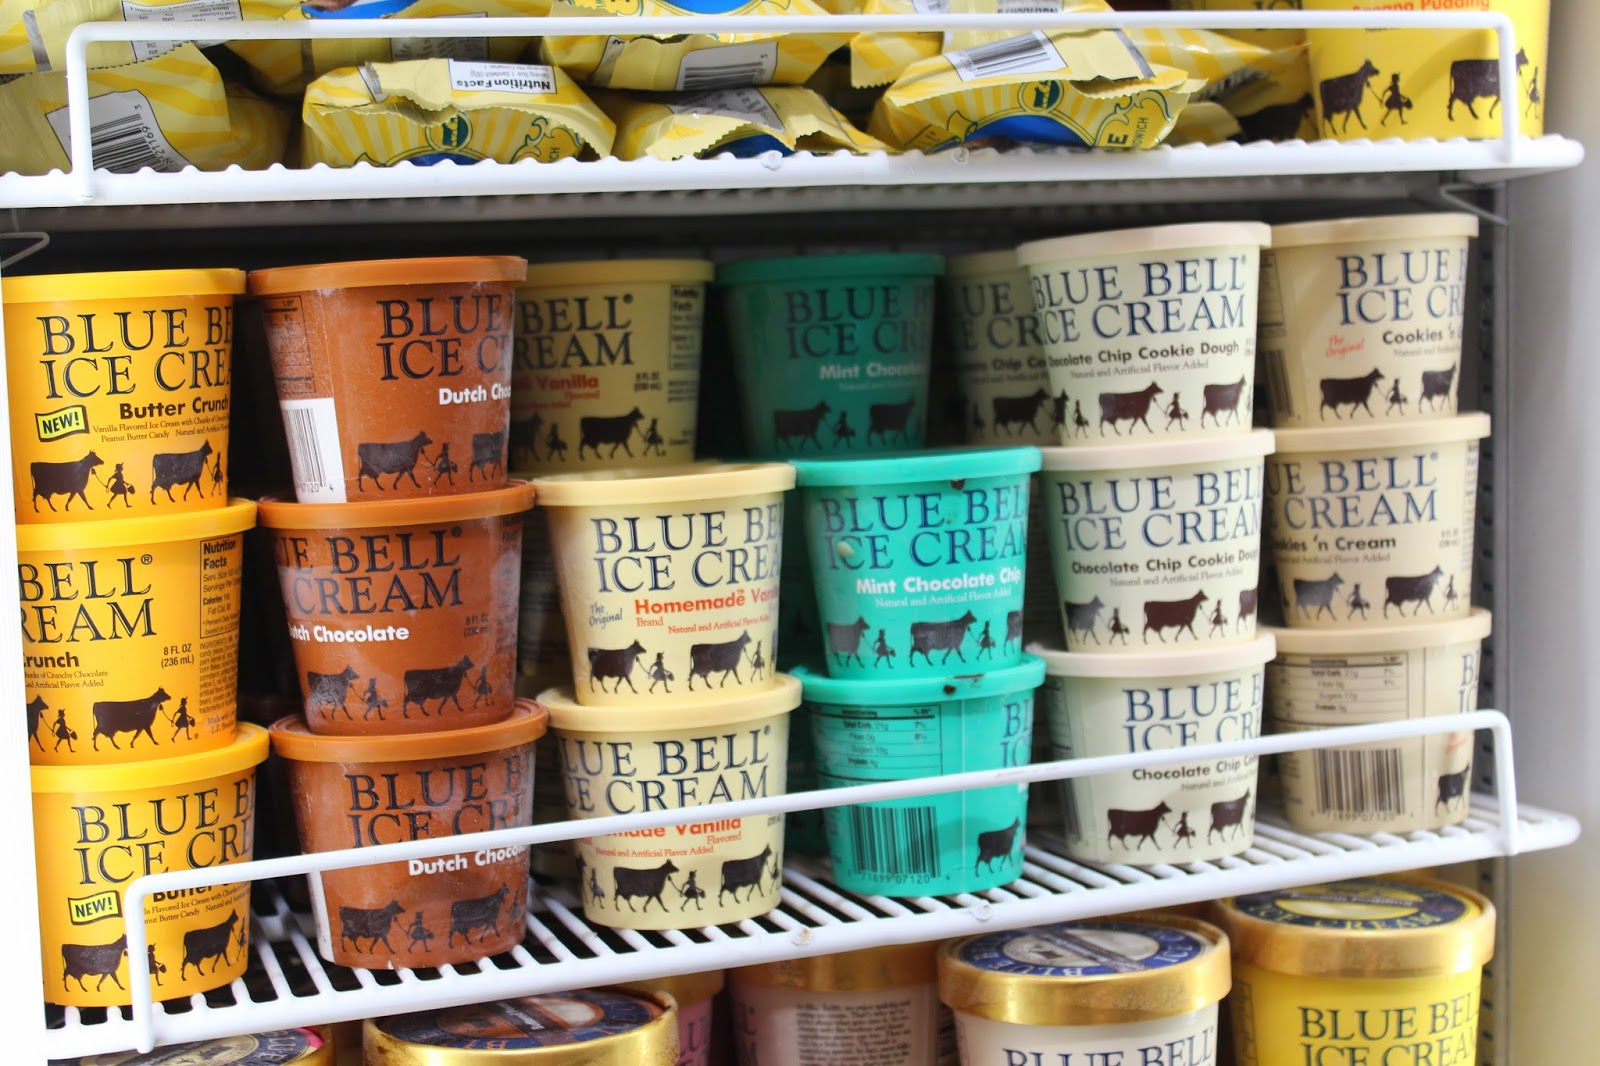 Blue bell ice cream new flavors